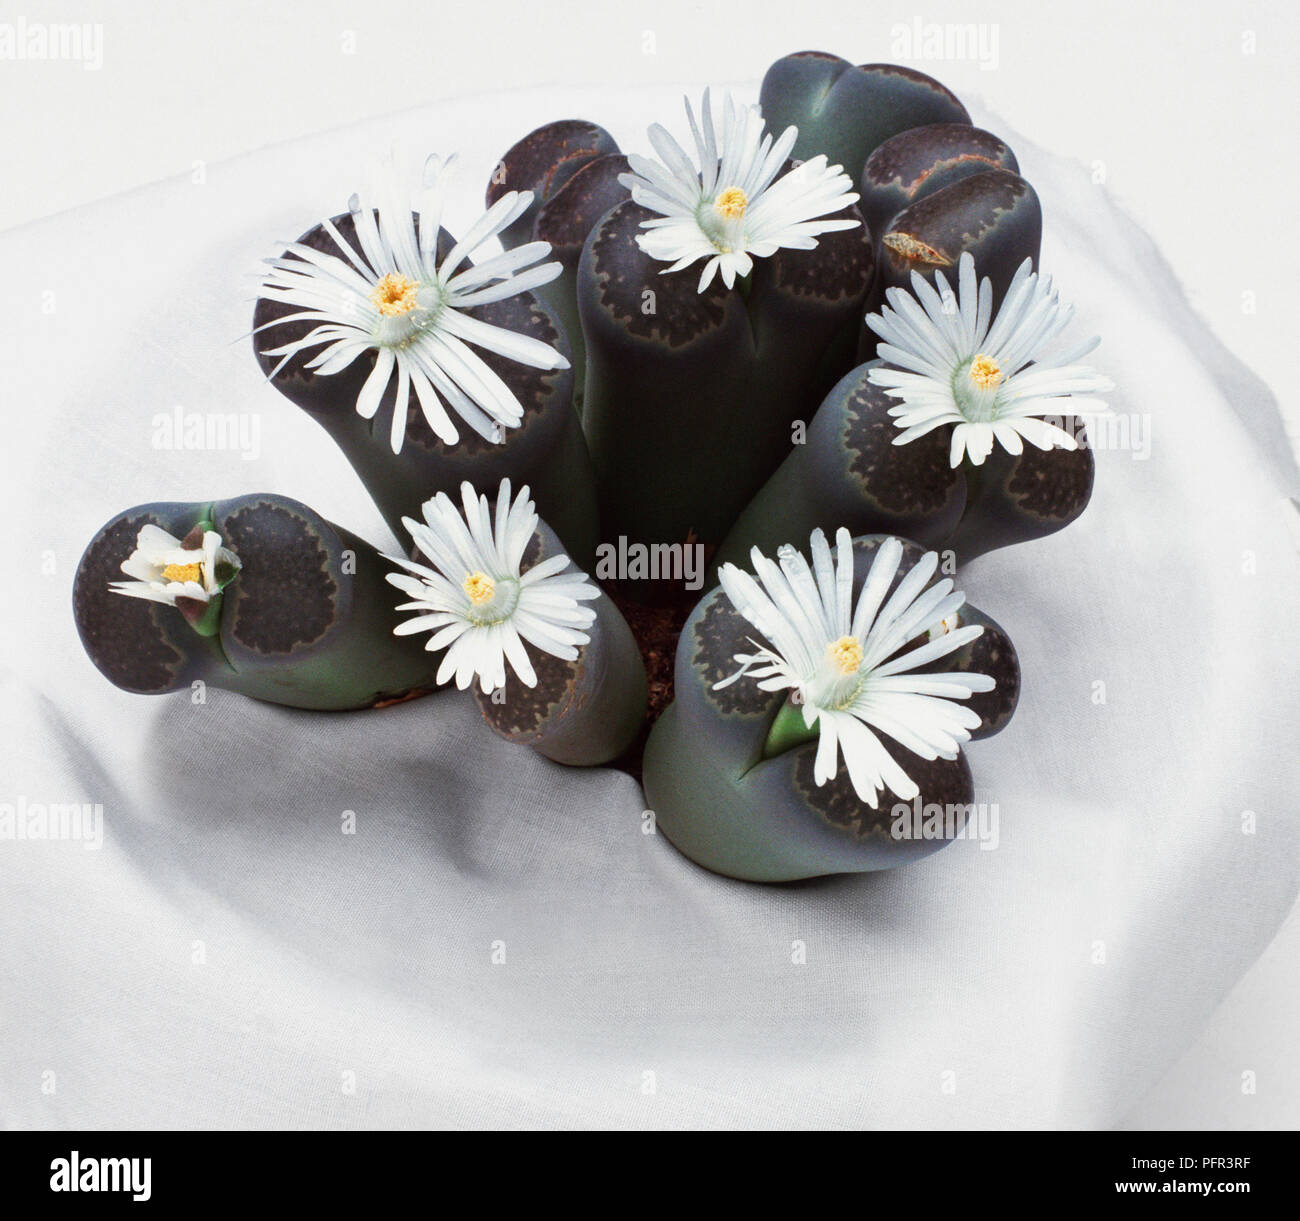 Lithops Salicola Succulent With White Flowers Stock Photo